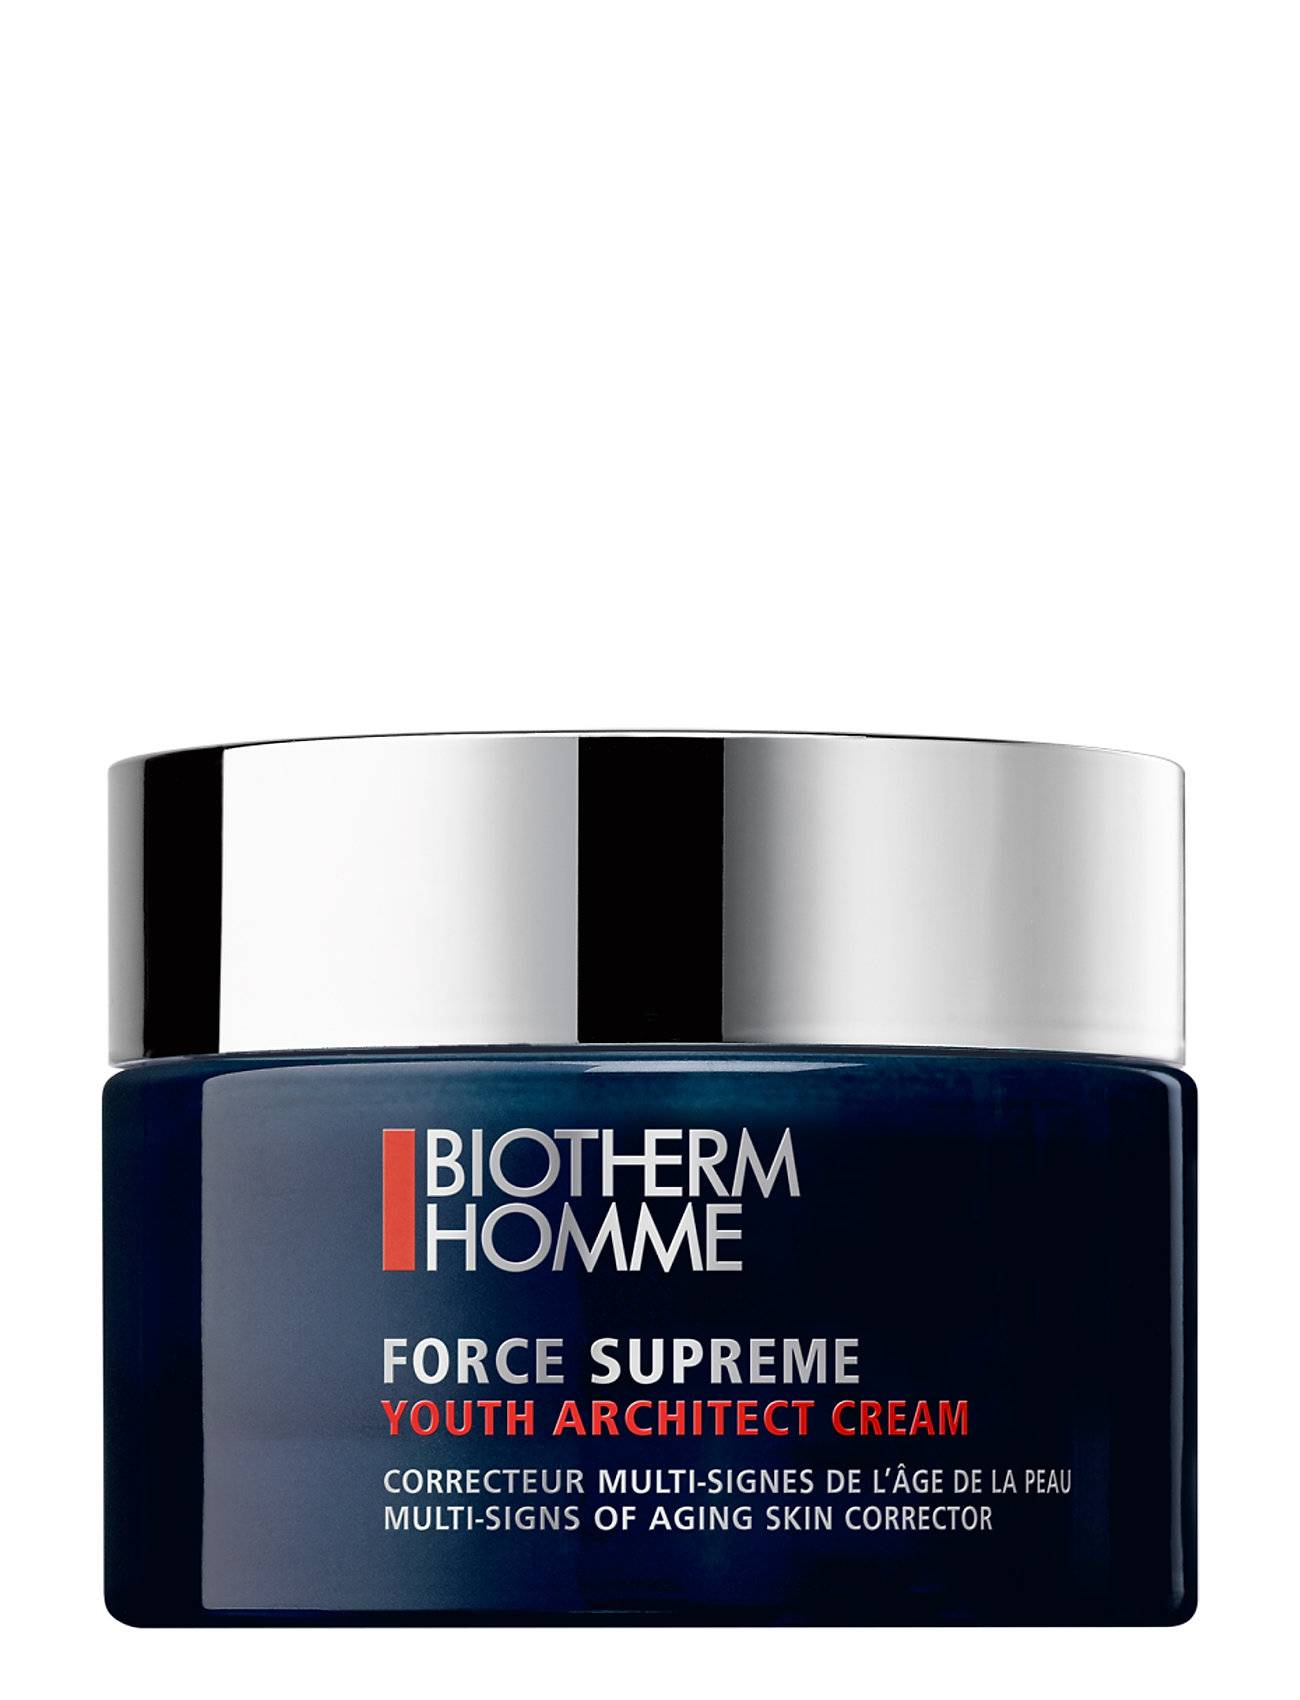 Biotherm Force Supreme Youth Architect Cream 50ml Kasvojen Ihonhoito Nude Biotherm